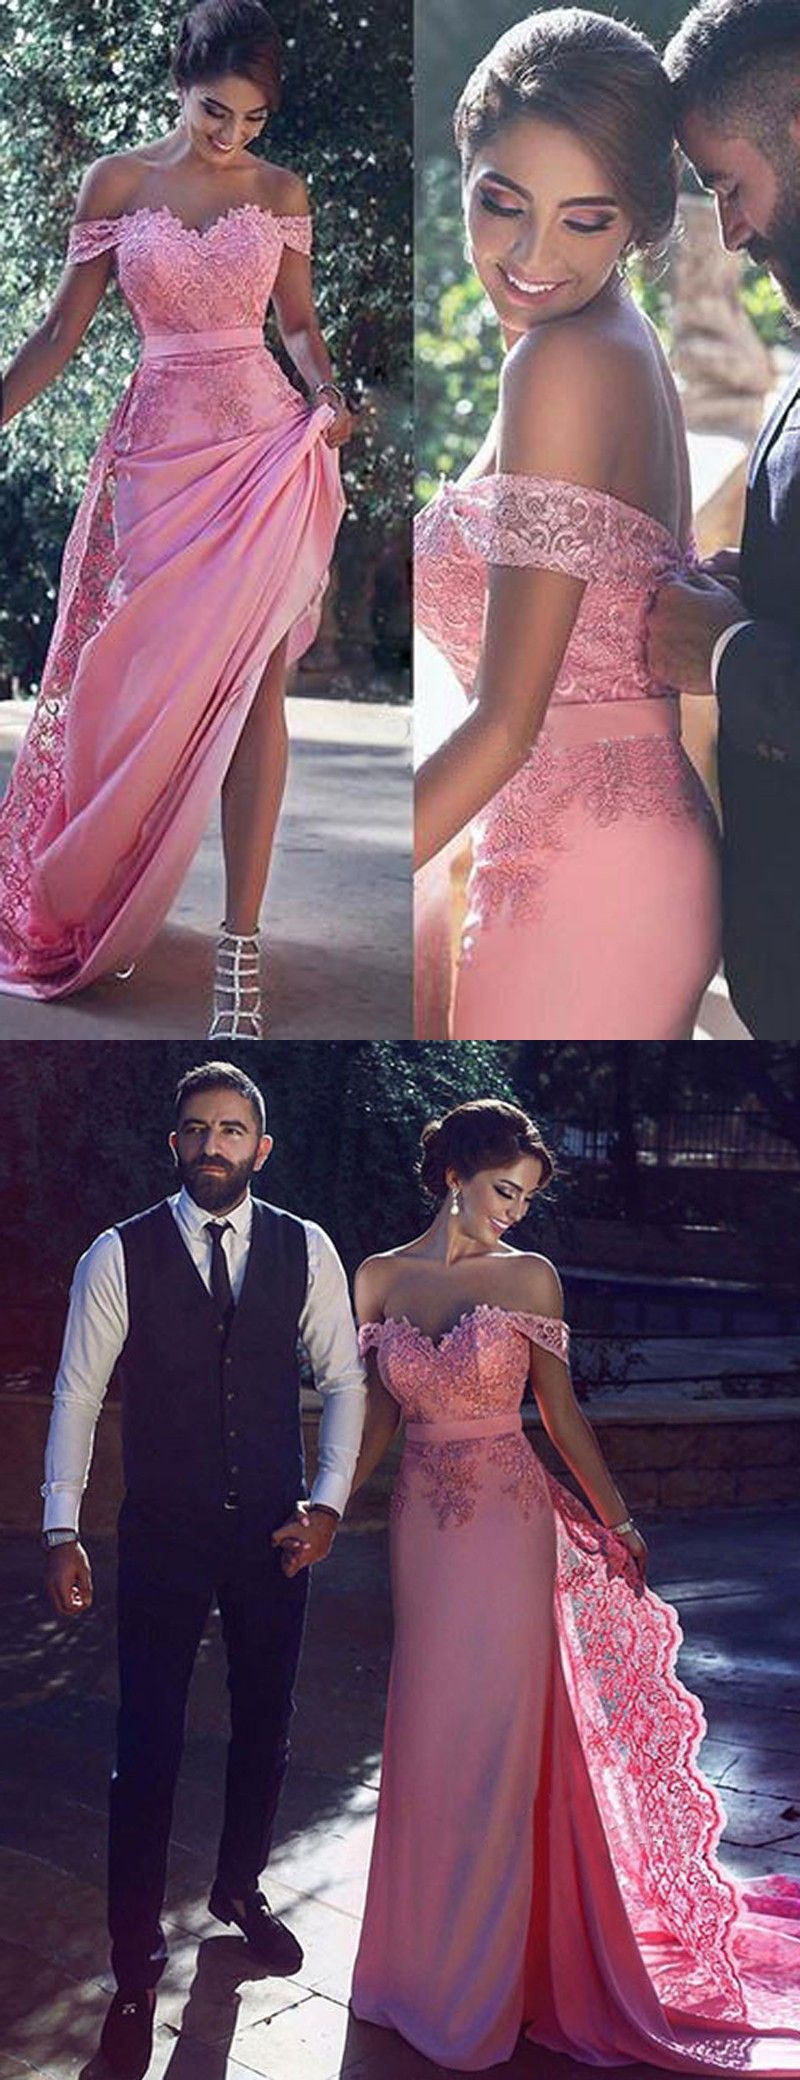 Sheath offtheshoulder sweep train pink prom dress with lace sash